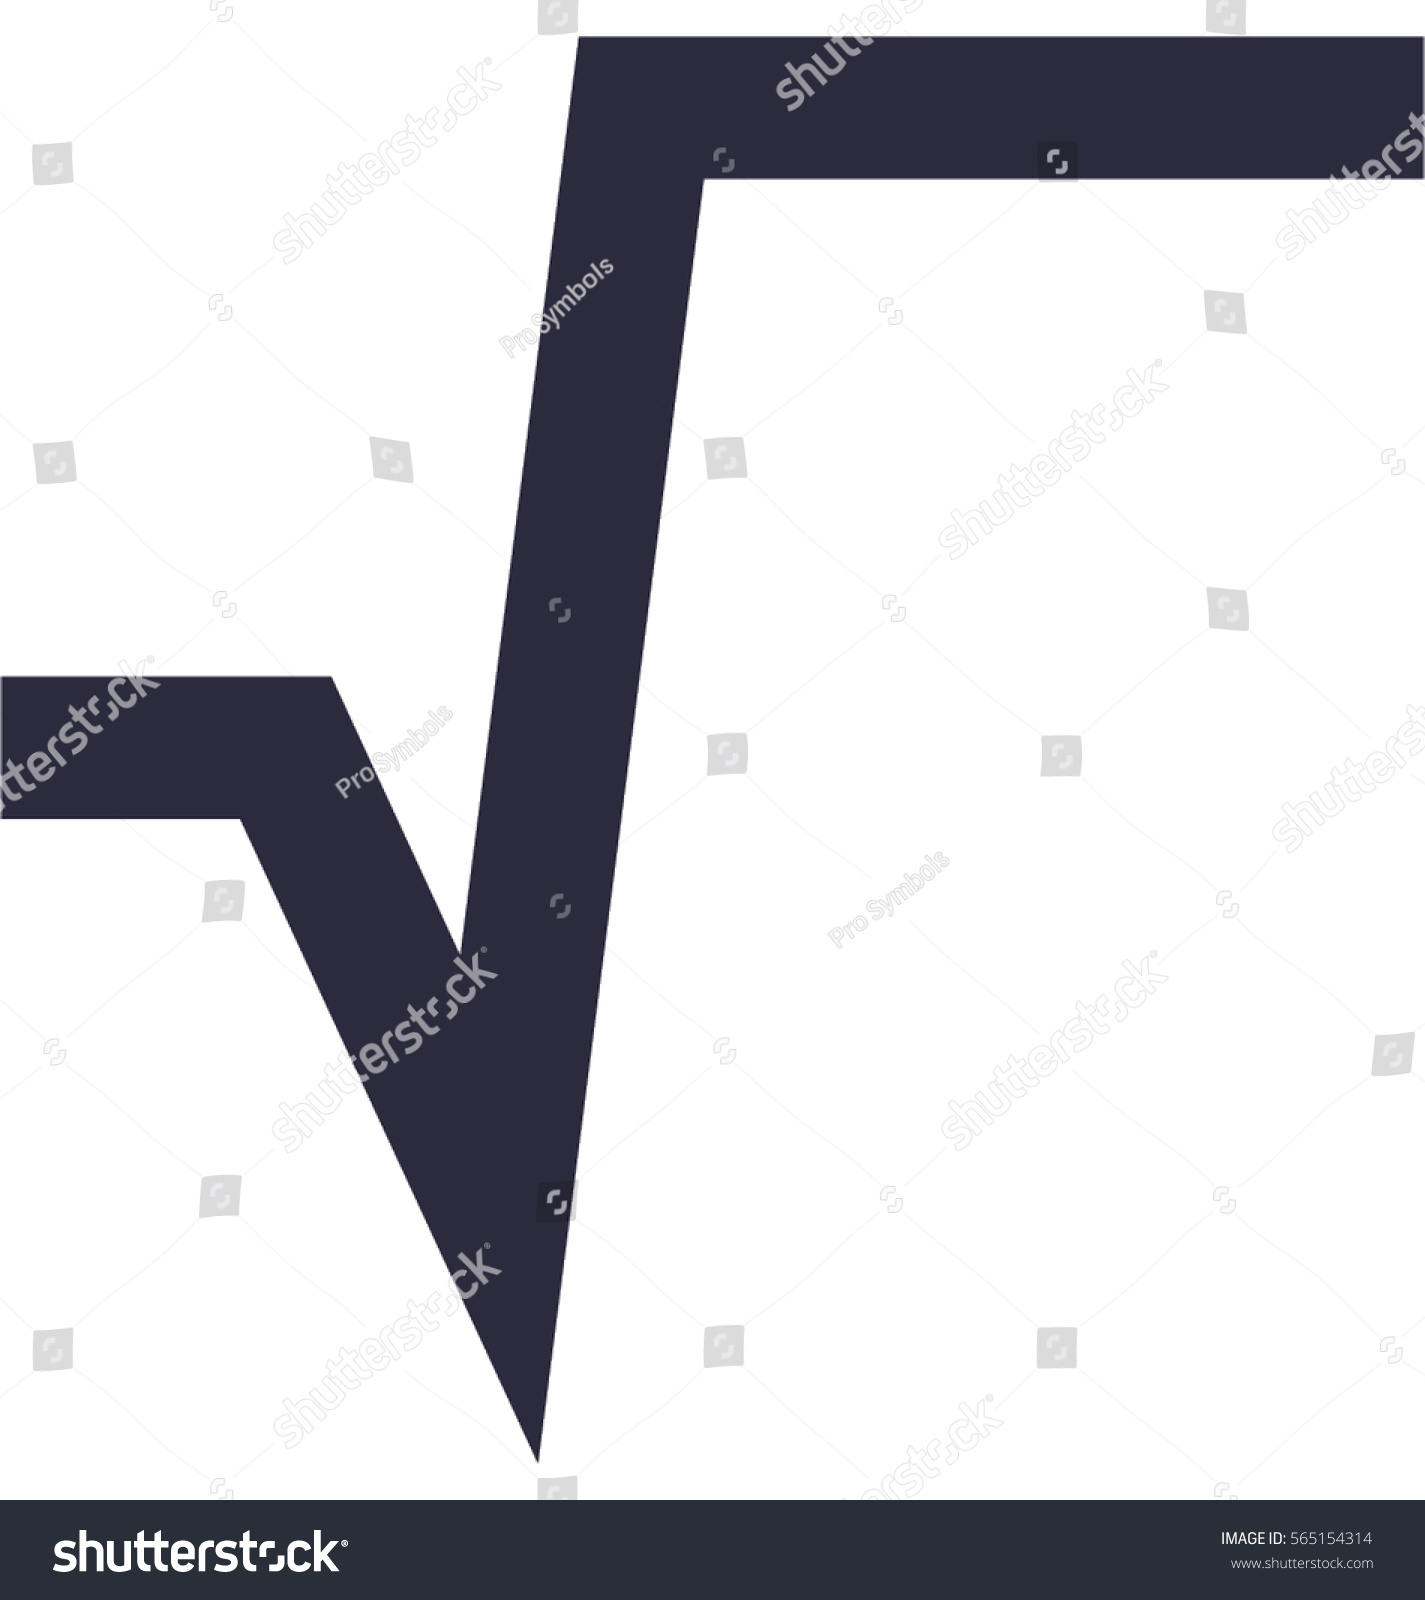 Square Root Vector Icon Stock Vector Royalty Free 565154314